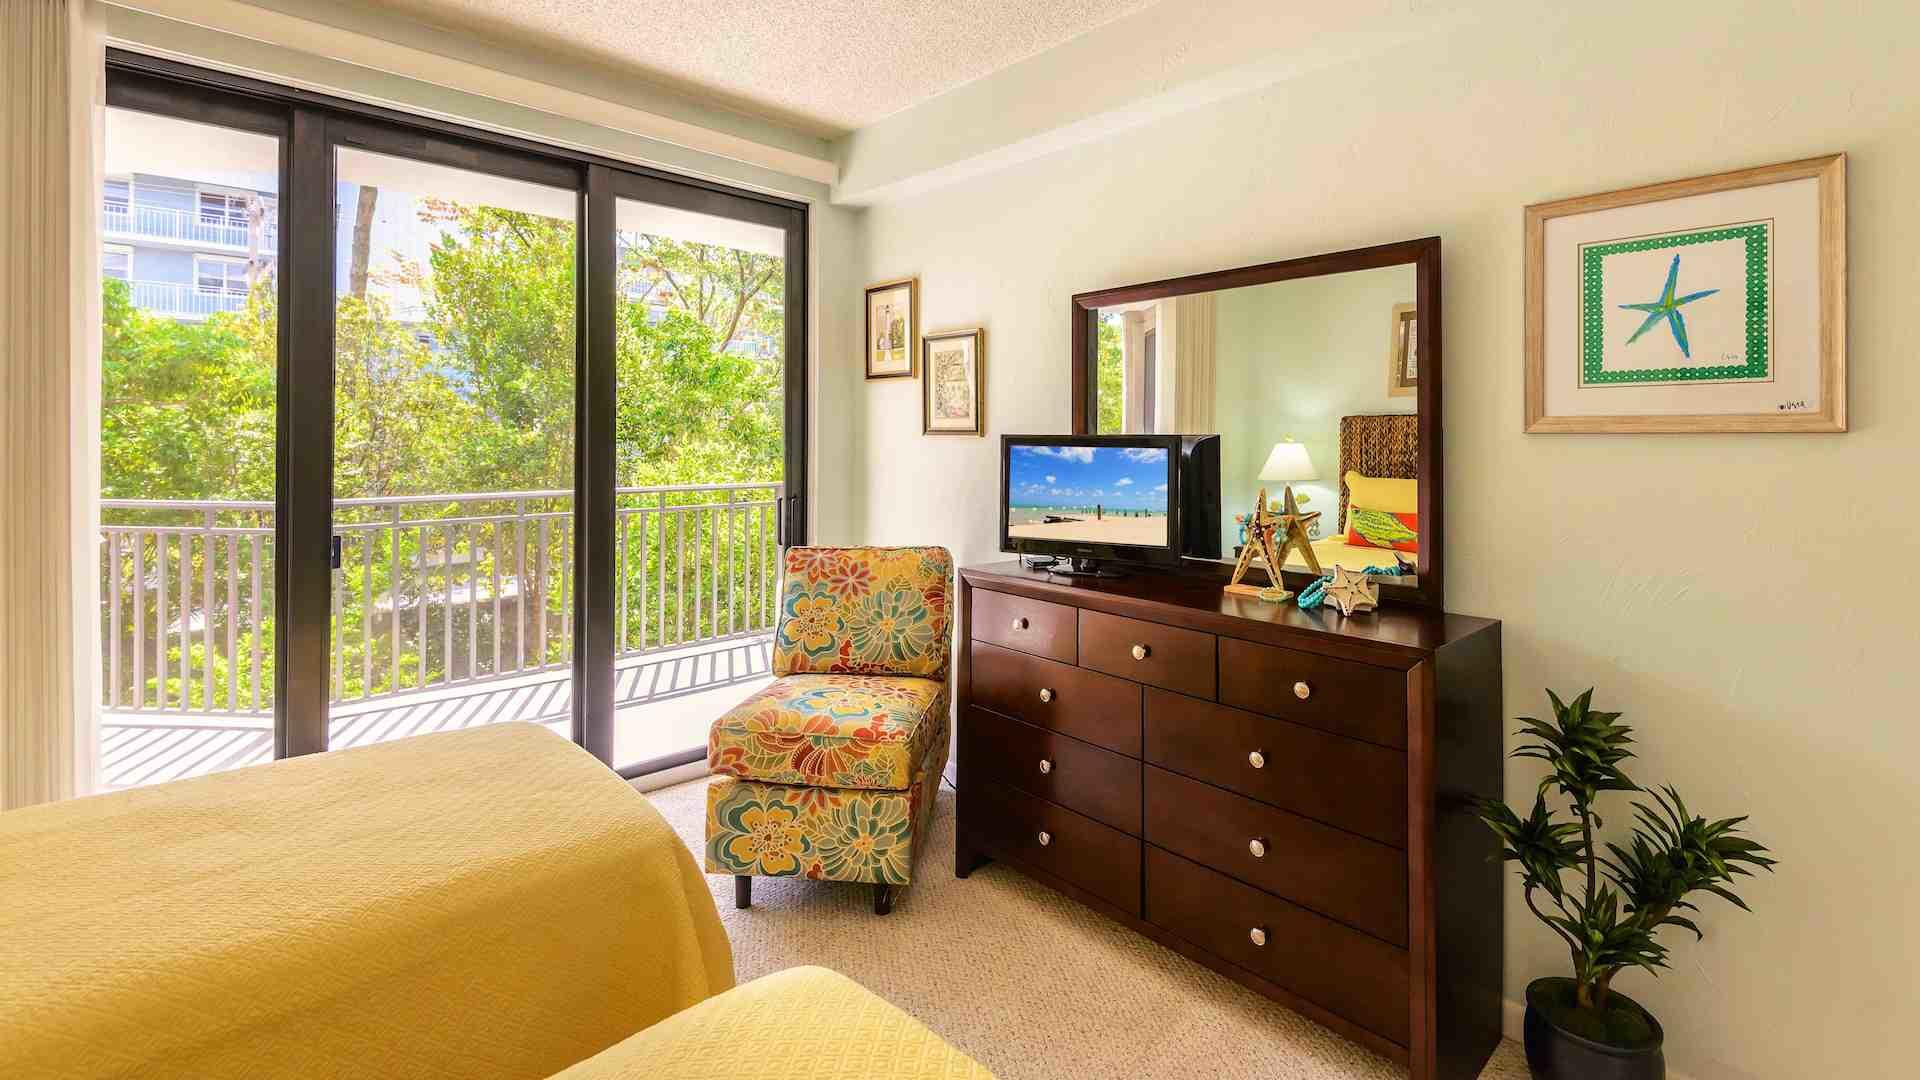 The second bedroom has triple sliders to the balcony , flat screen TV & dresser.